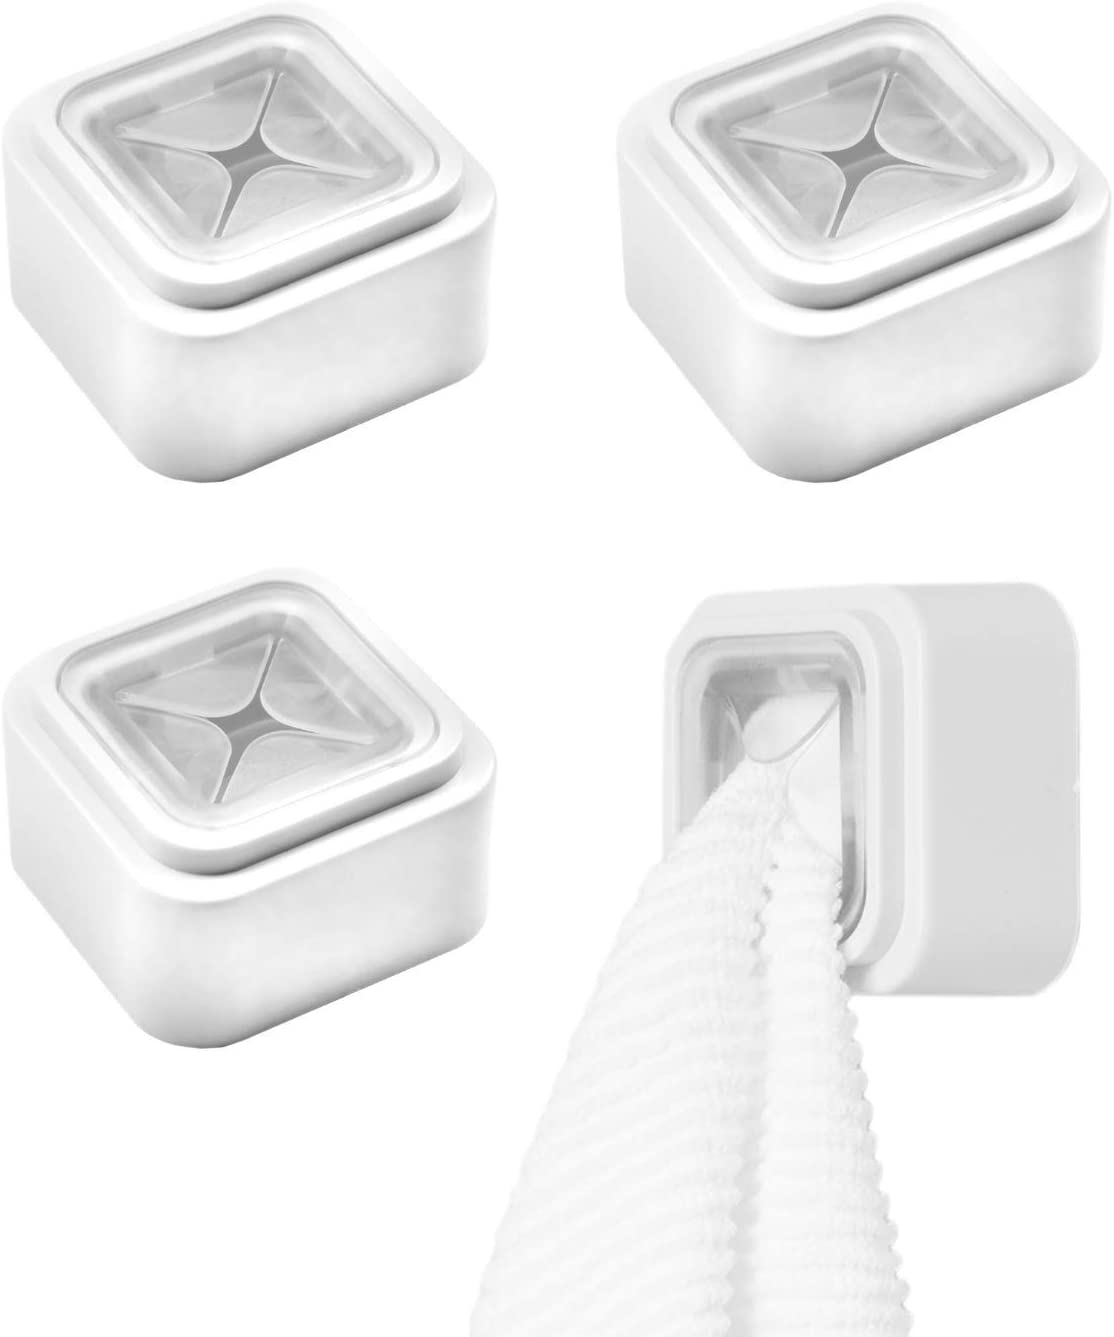 3M Self-Adhesive Towel Holder (Pack of 4) – Perfect for Hanging Face Towels, Body Towels or Robes. Wall Mounted Hook for Bathroom, Kitchen. Stick & Go Easy Installation - -